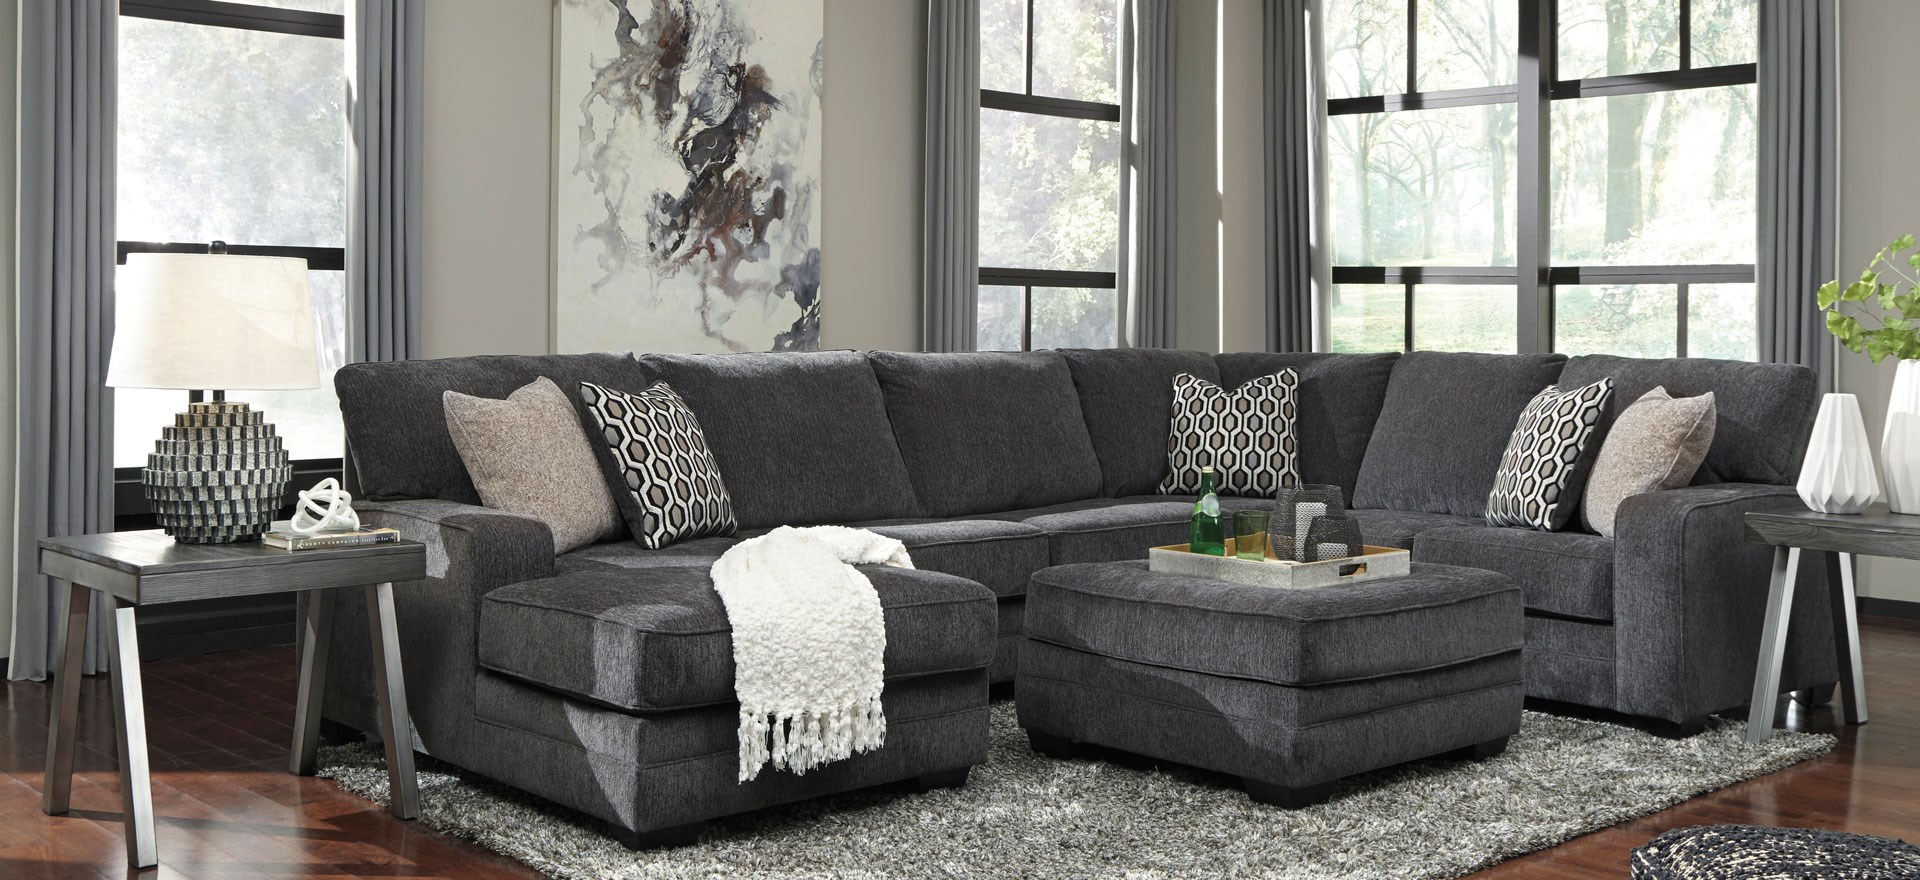 tracling sectional sofa